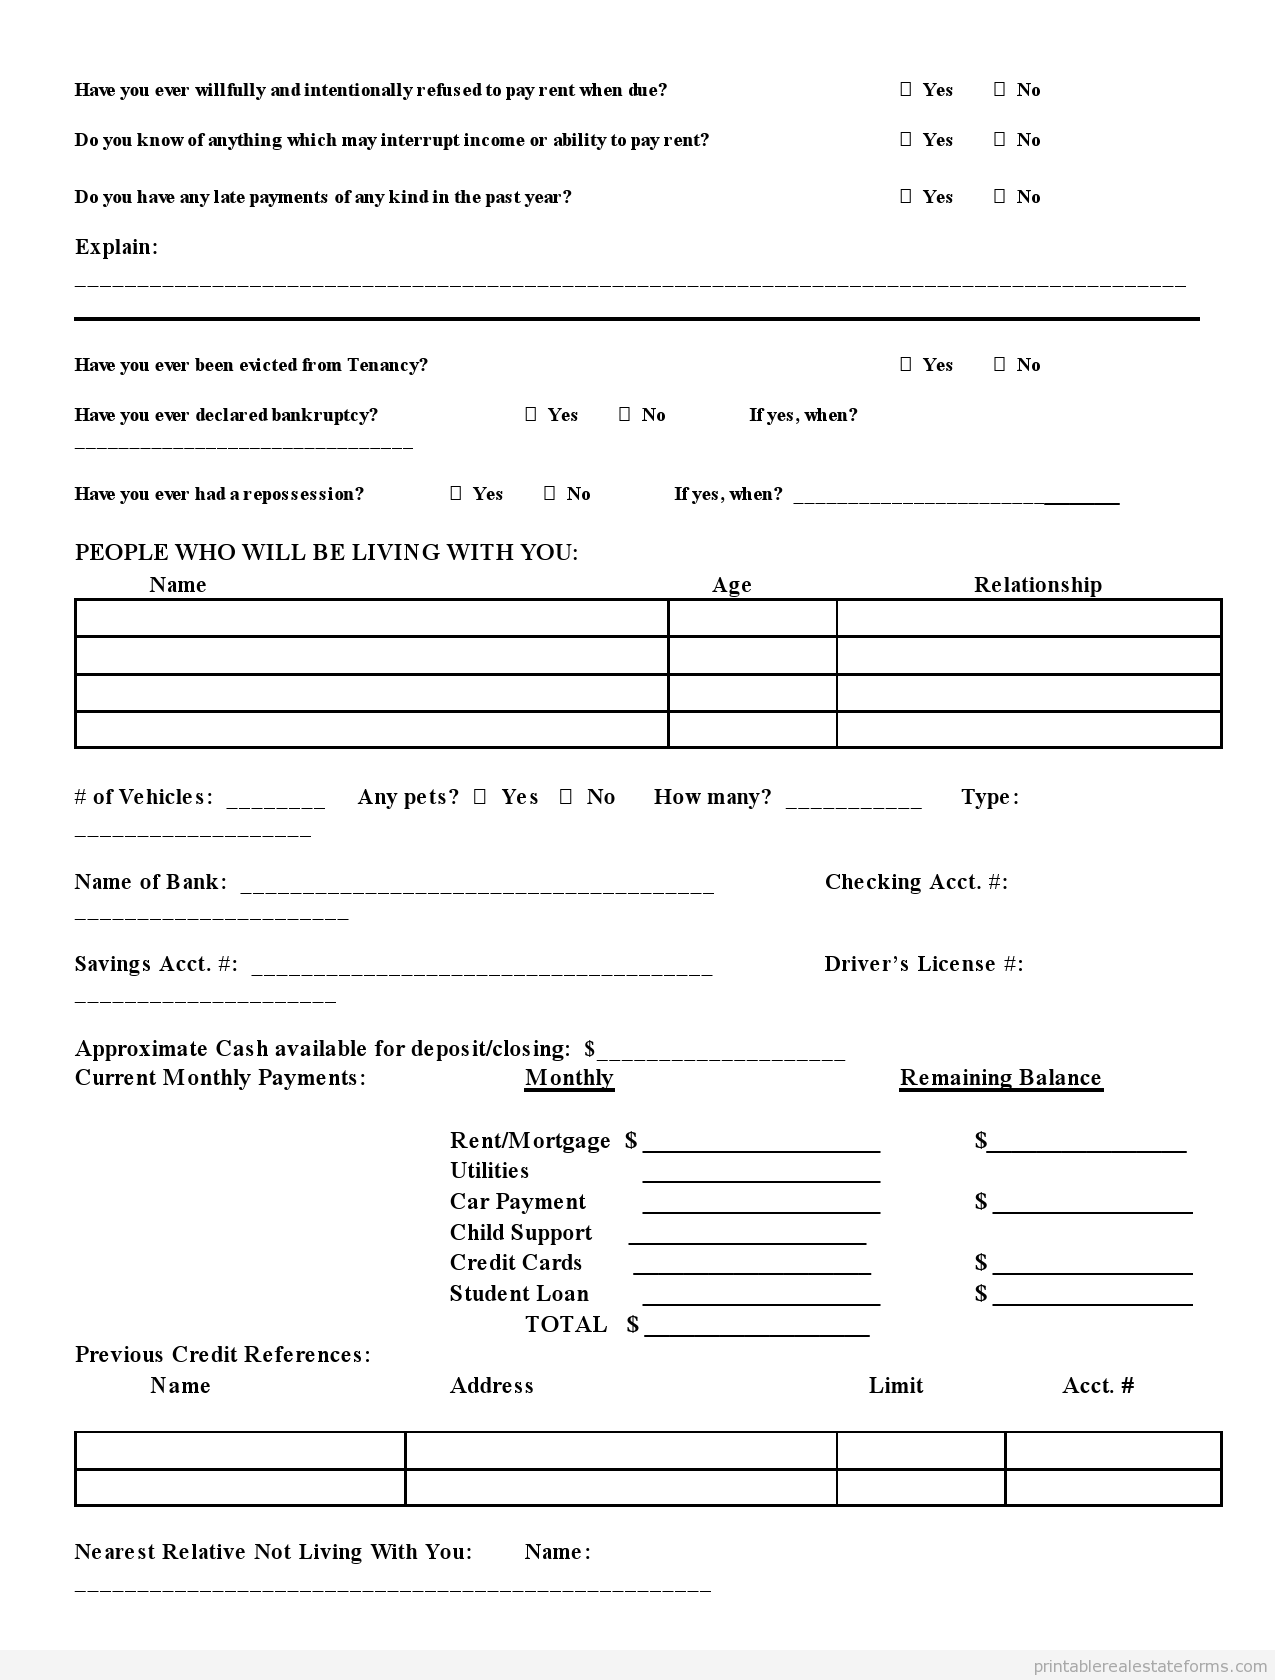 Sample Printable preliminary credit application 2 Form – Sample Credit Application Form